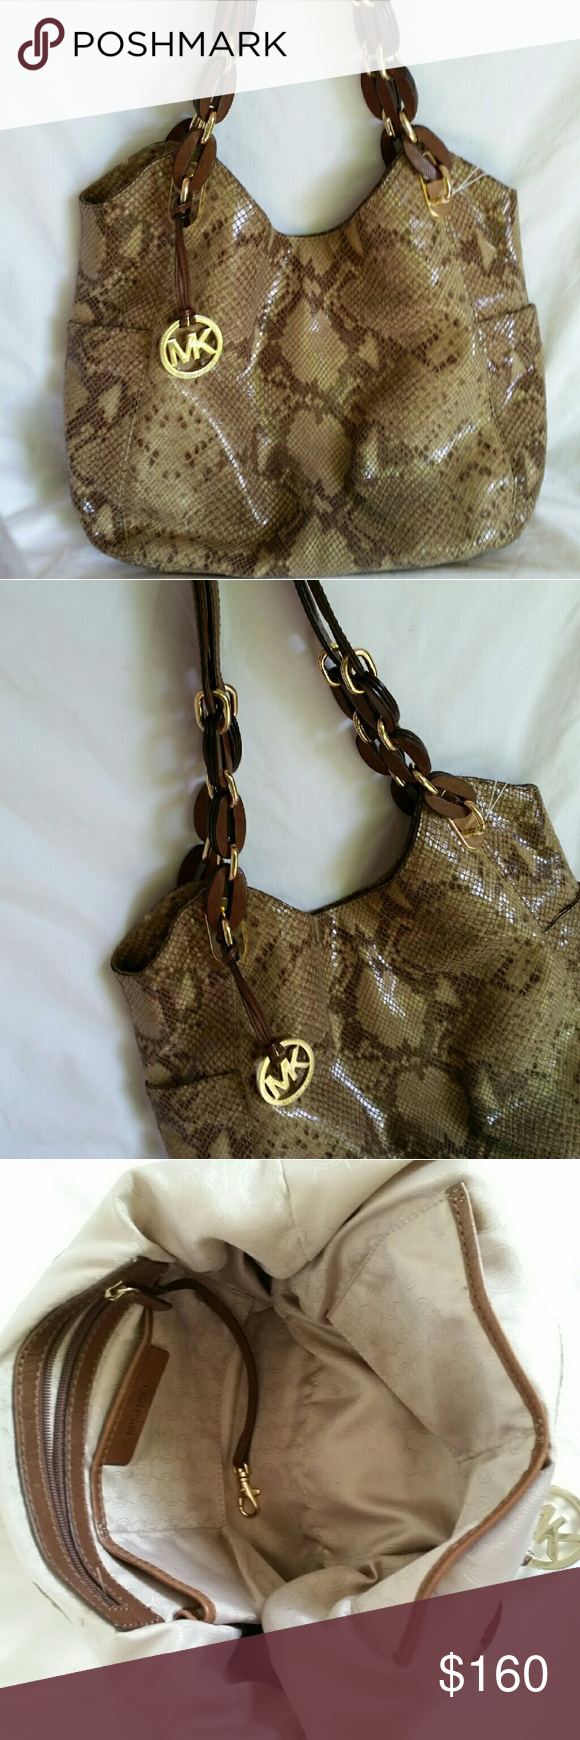 MICHAEL KORS Python Sand Lilly Tote Bag Authentic MICHAEL